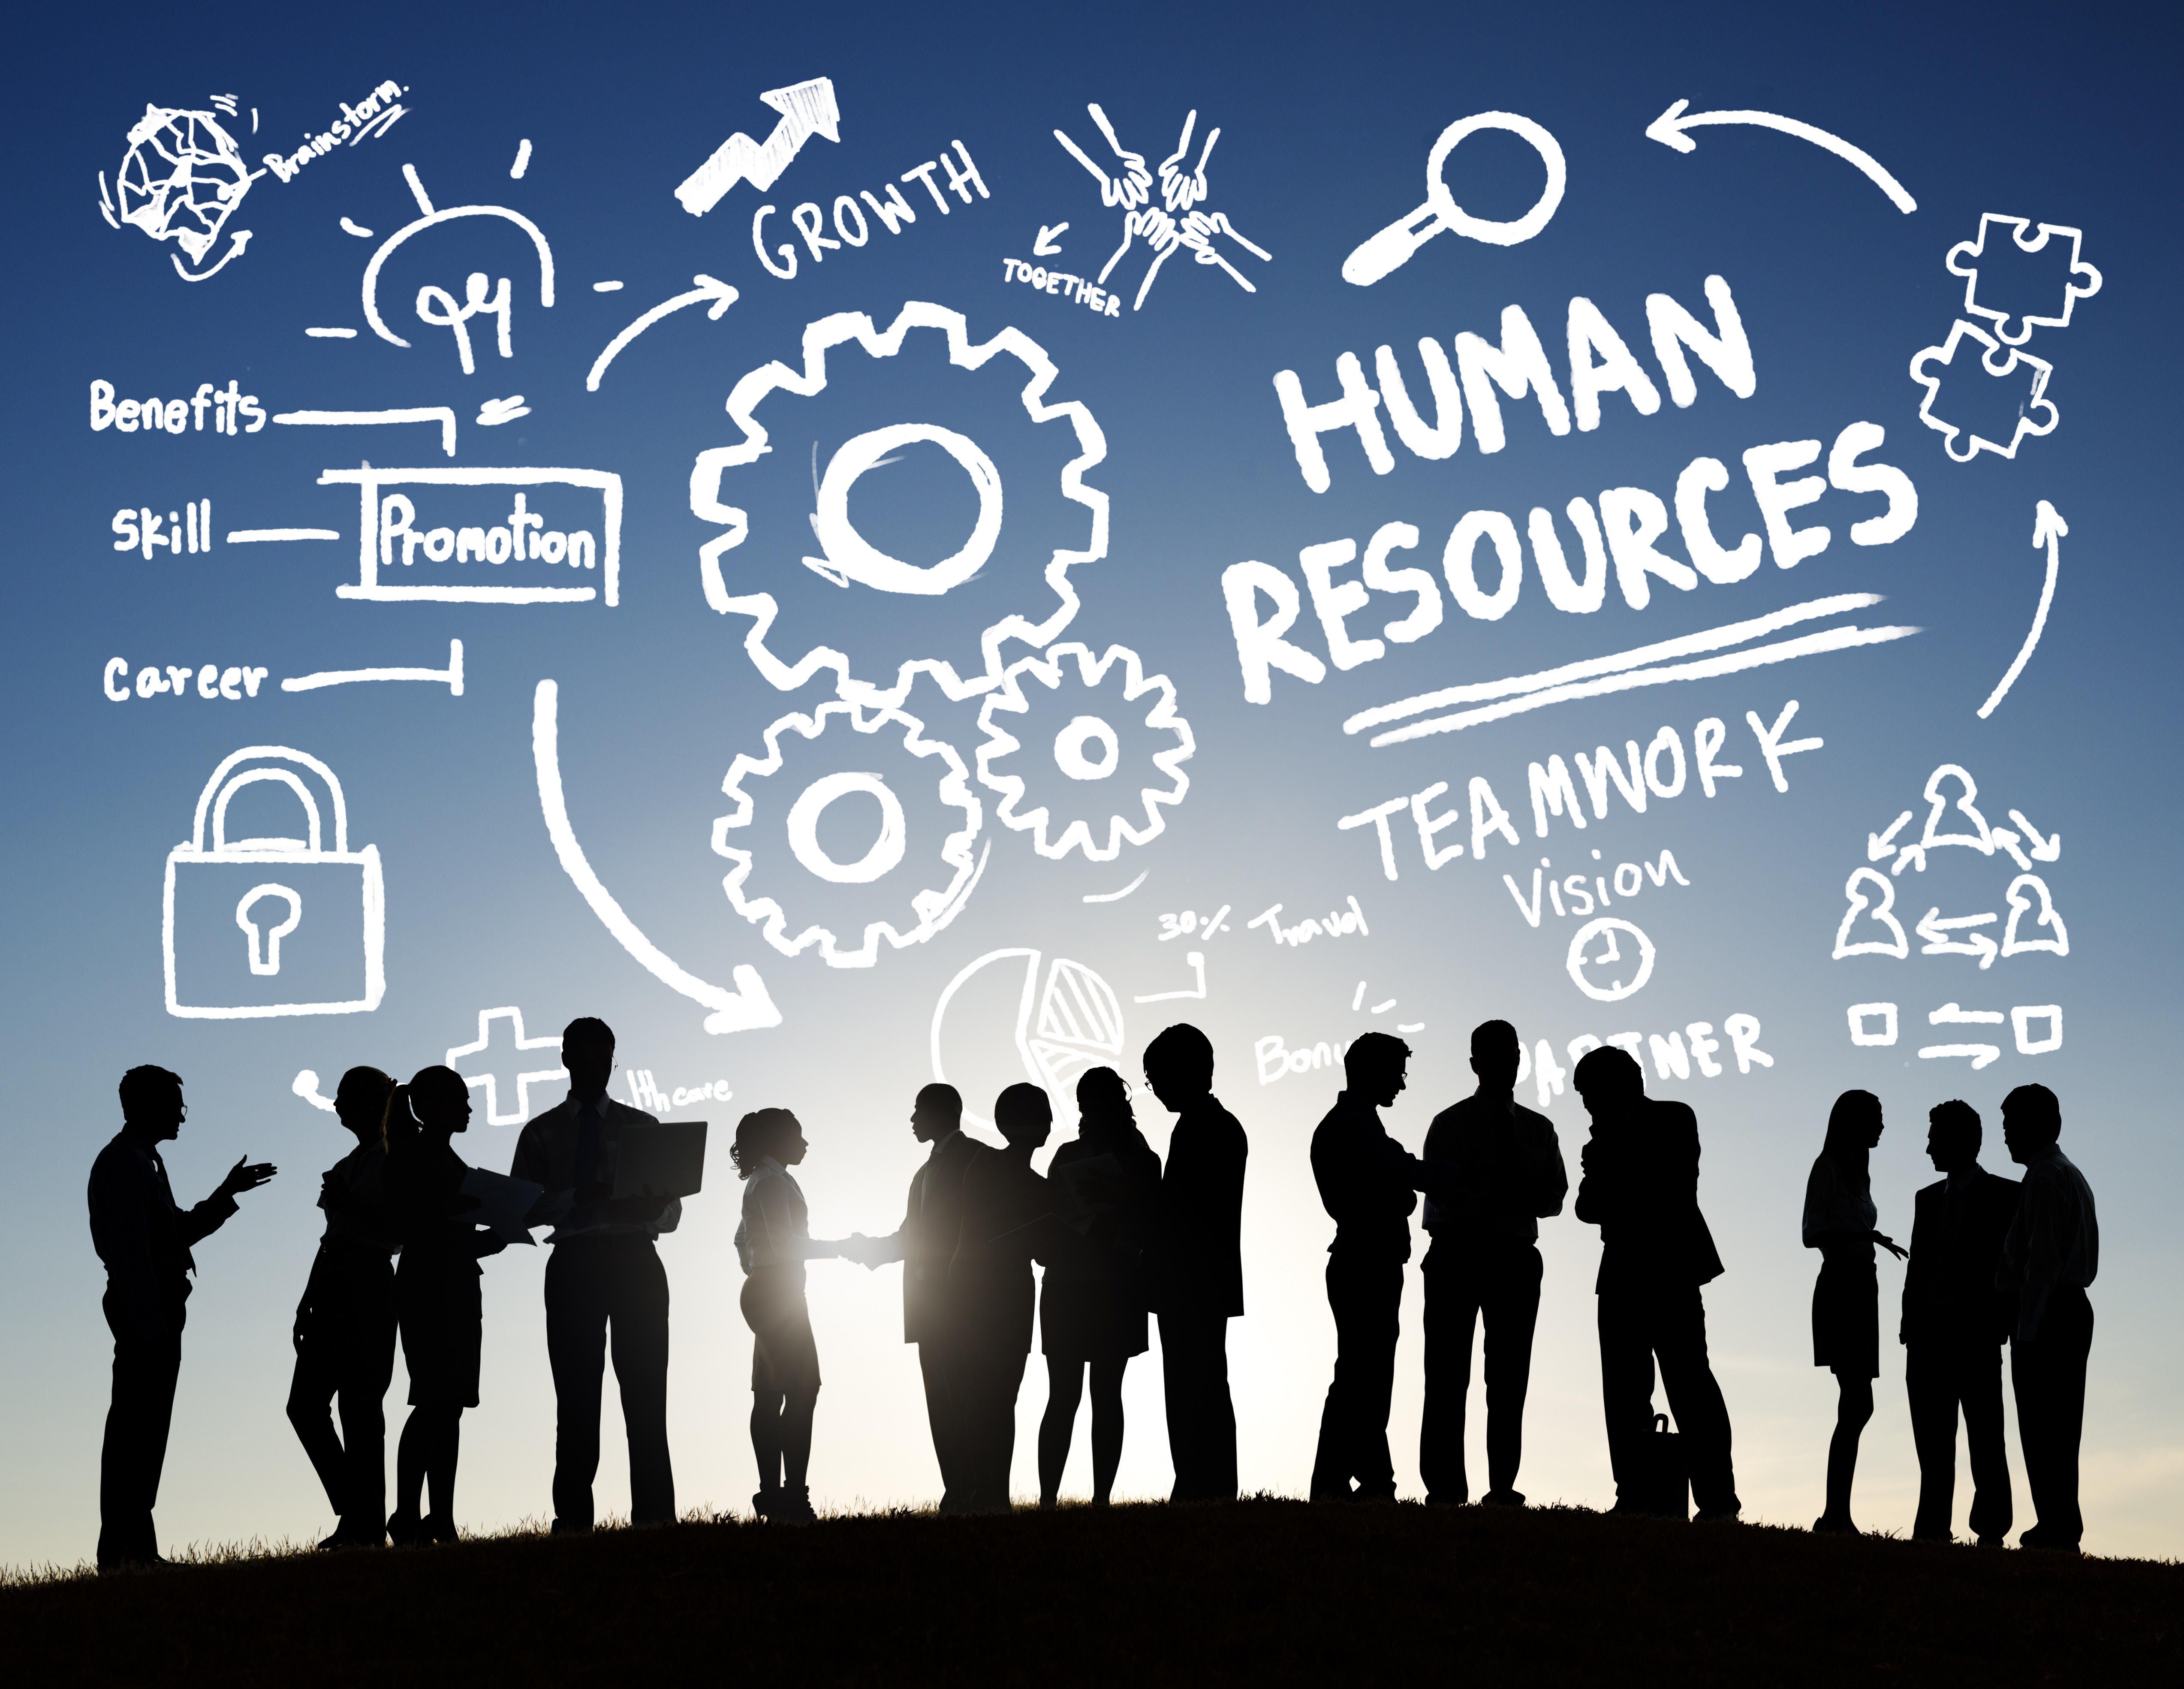 human resource management on employee development Human resource departments typically conduct activities designed to train and develop company personnel, whether to address performance problems or help prepare an employee for a management role.